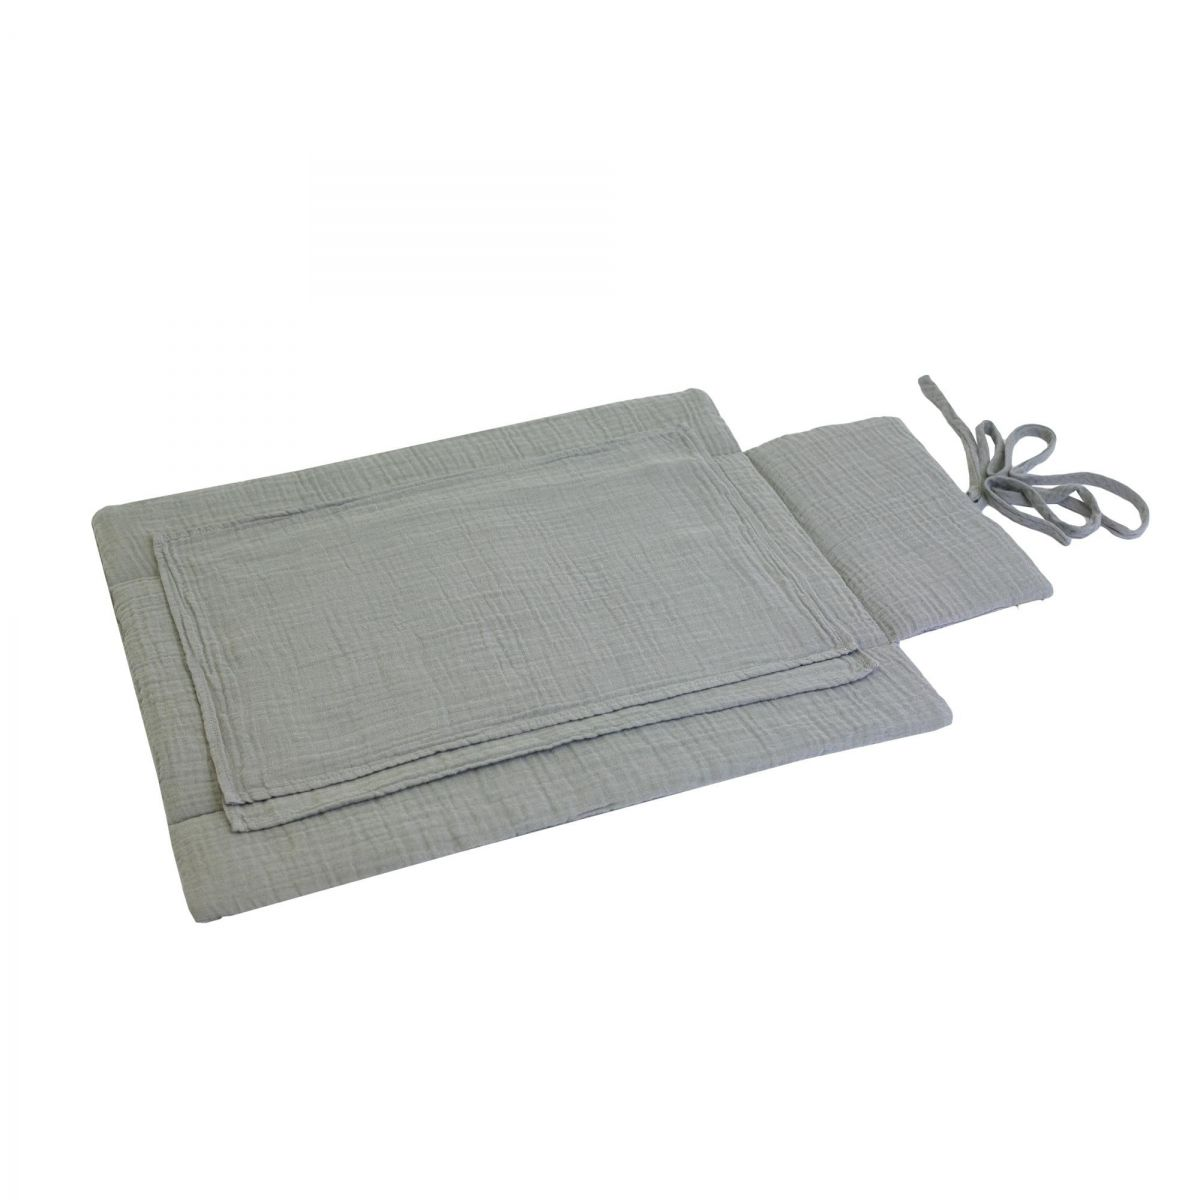 Numero 74 Travel Changing Pad silver grey